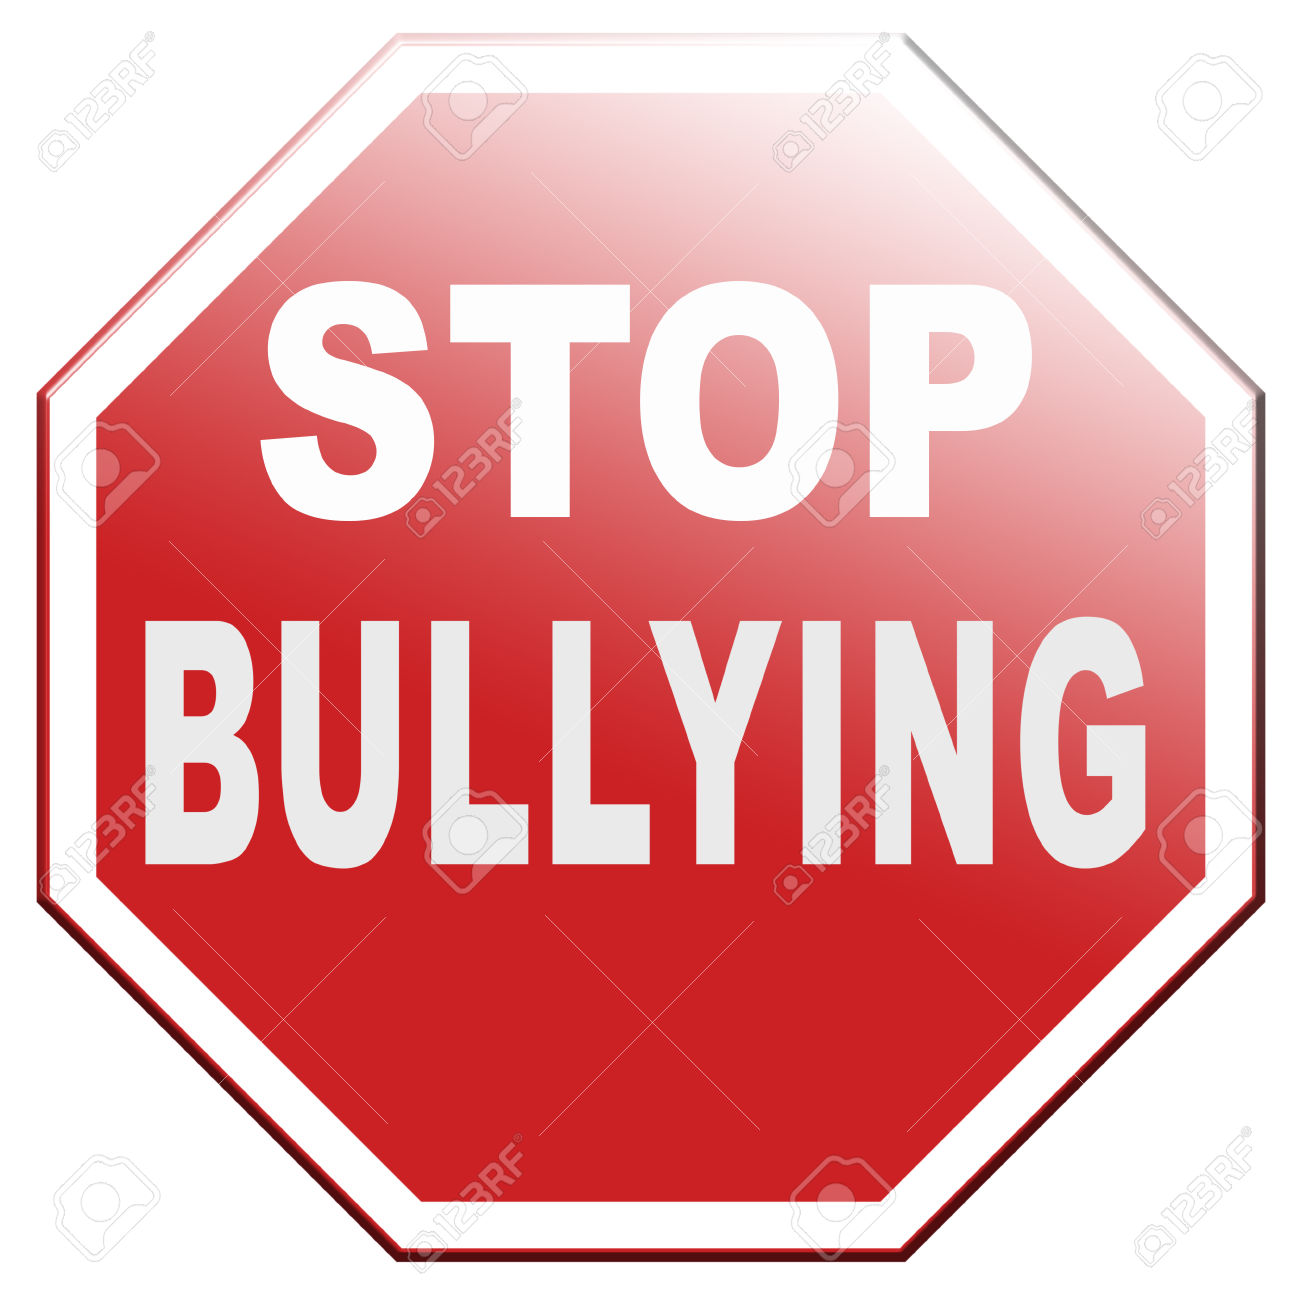 bullying in the schools Ii s t a t e of c a l i f o r n i a d e p a r t m e n t o f e d u c a t i o n publishing information bullying at school was developed by the counseling and student support.